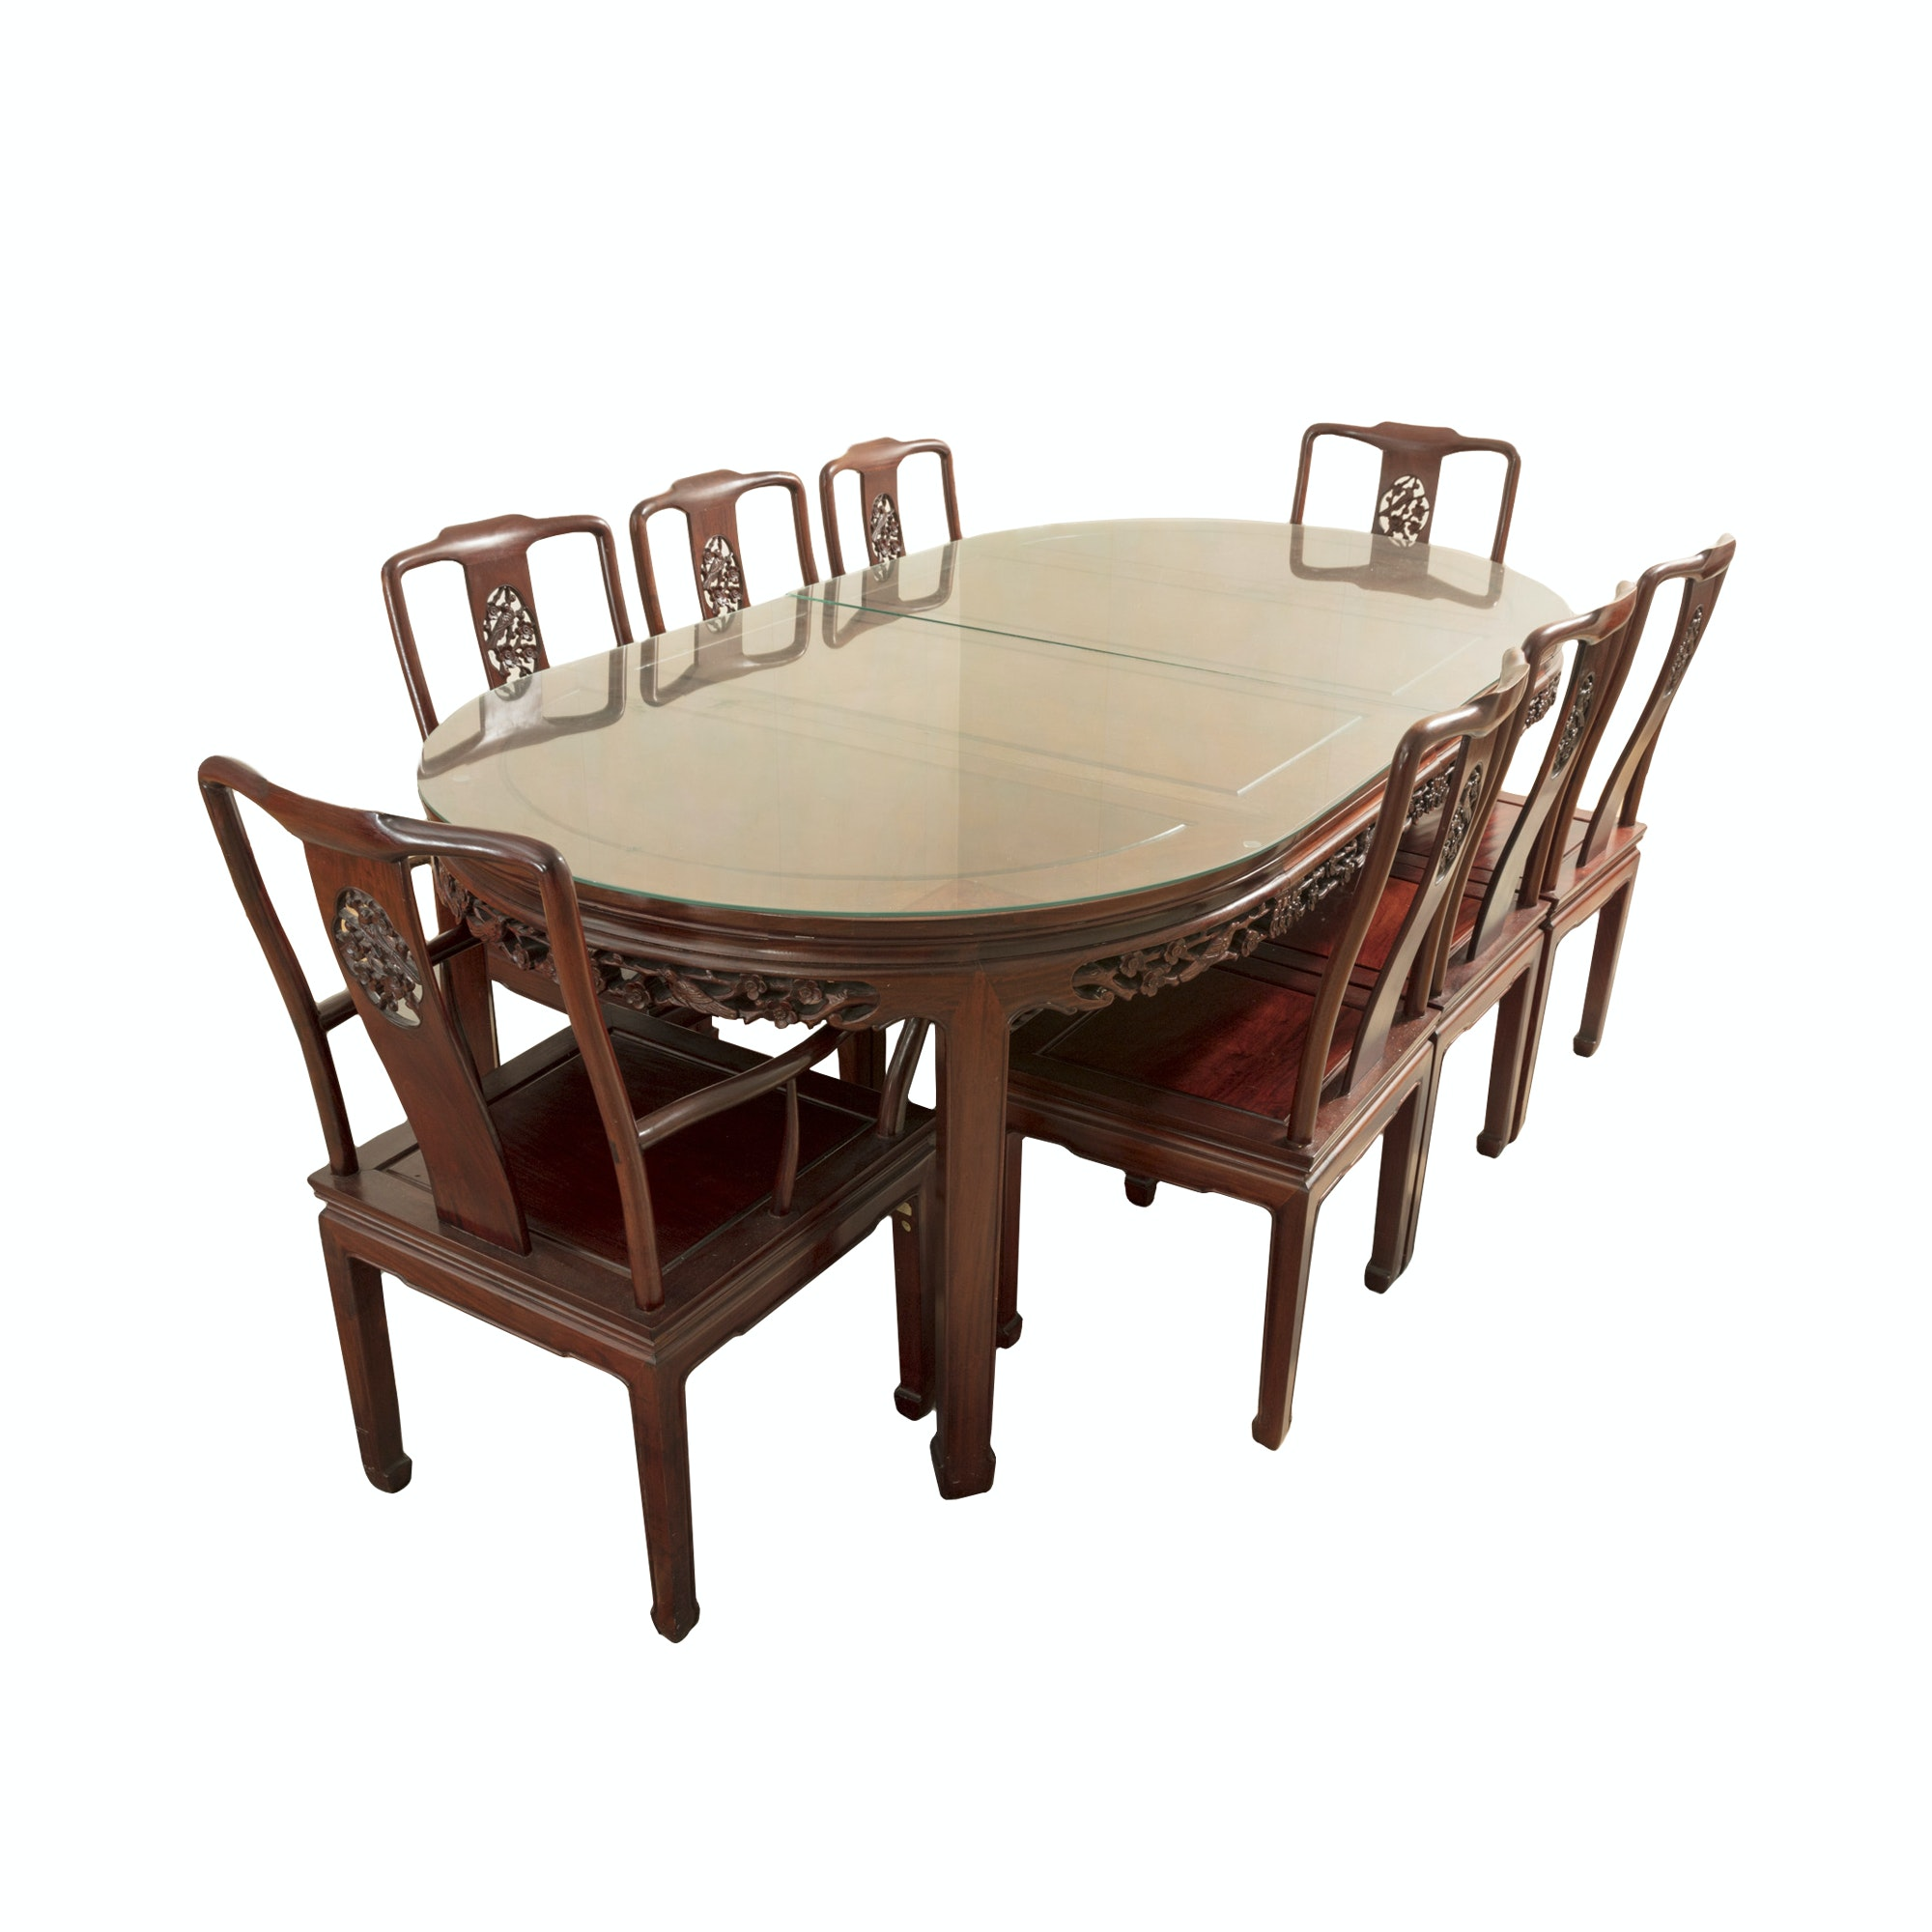 Asian Inspired Walnut Dining Table and Chairs